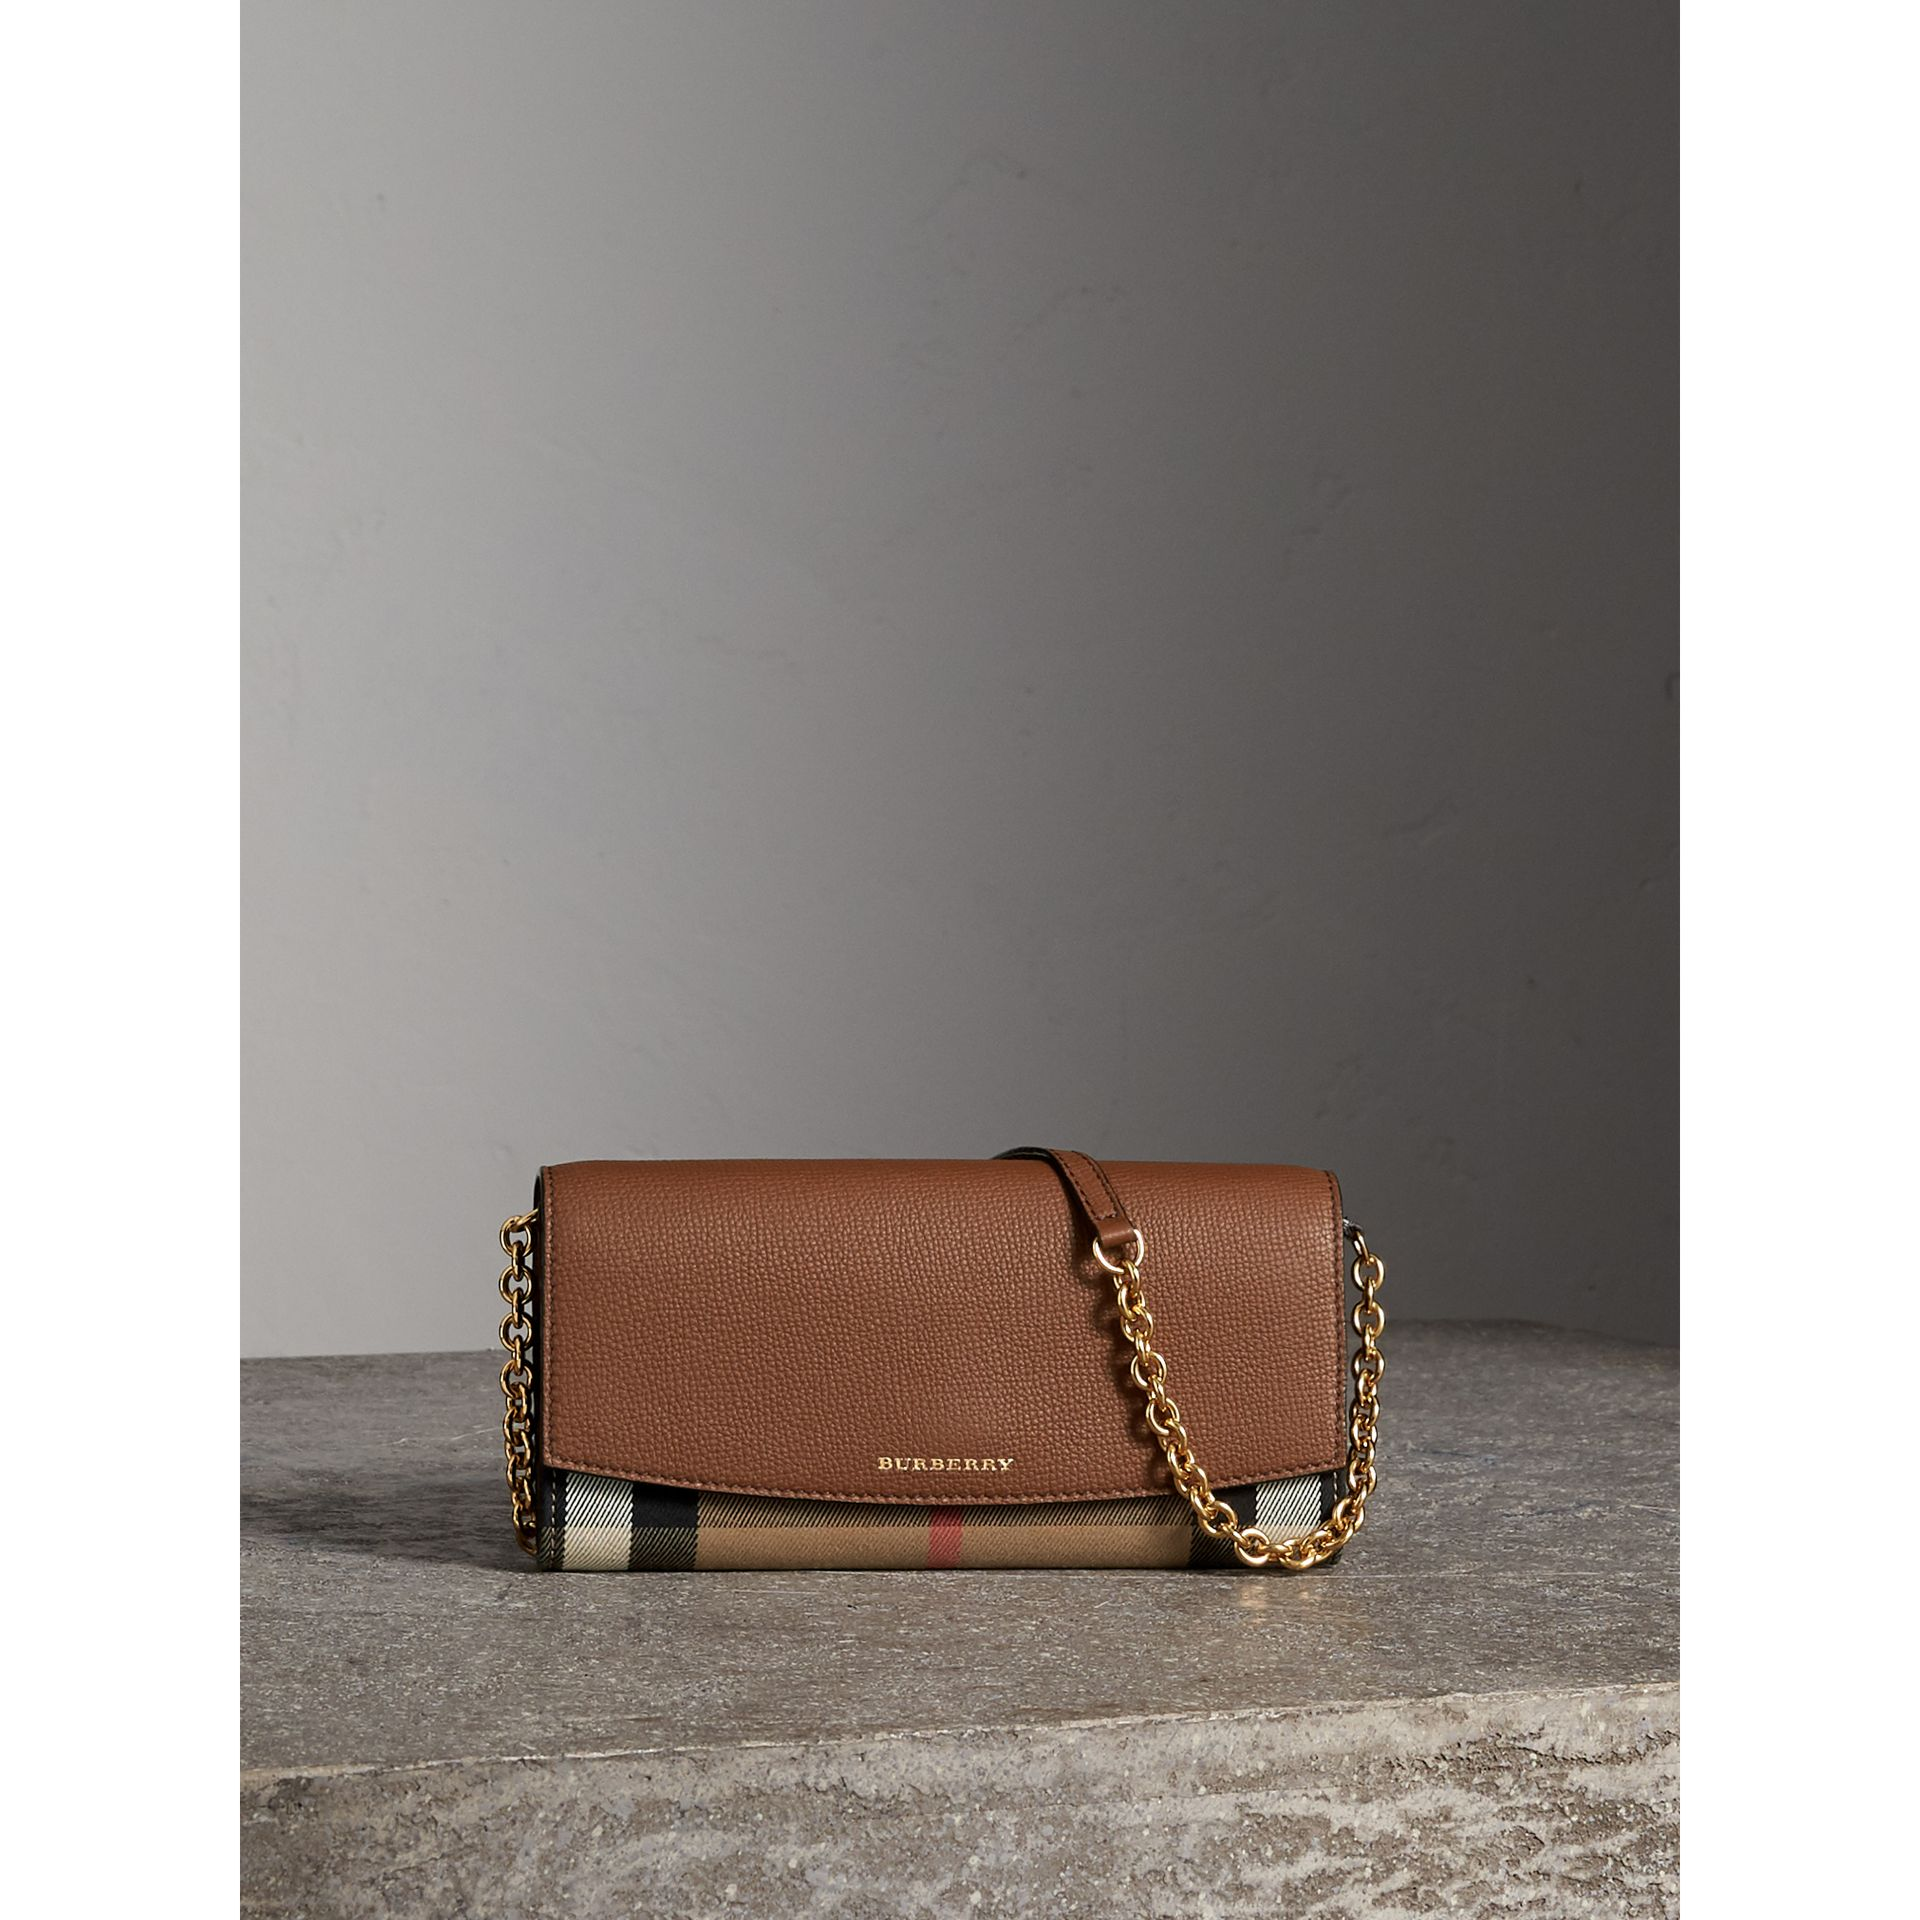 House Check and Leather Wallet with Chain in Tan - Women | Burberry - gallery image 0